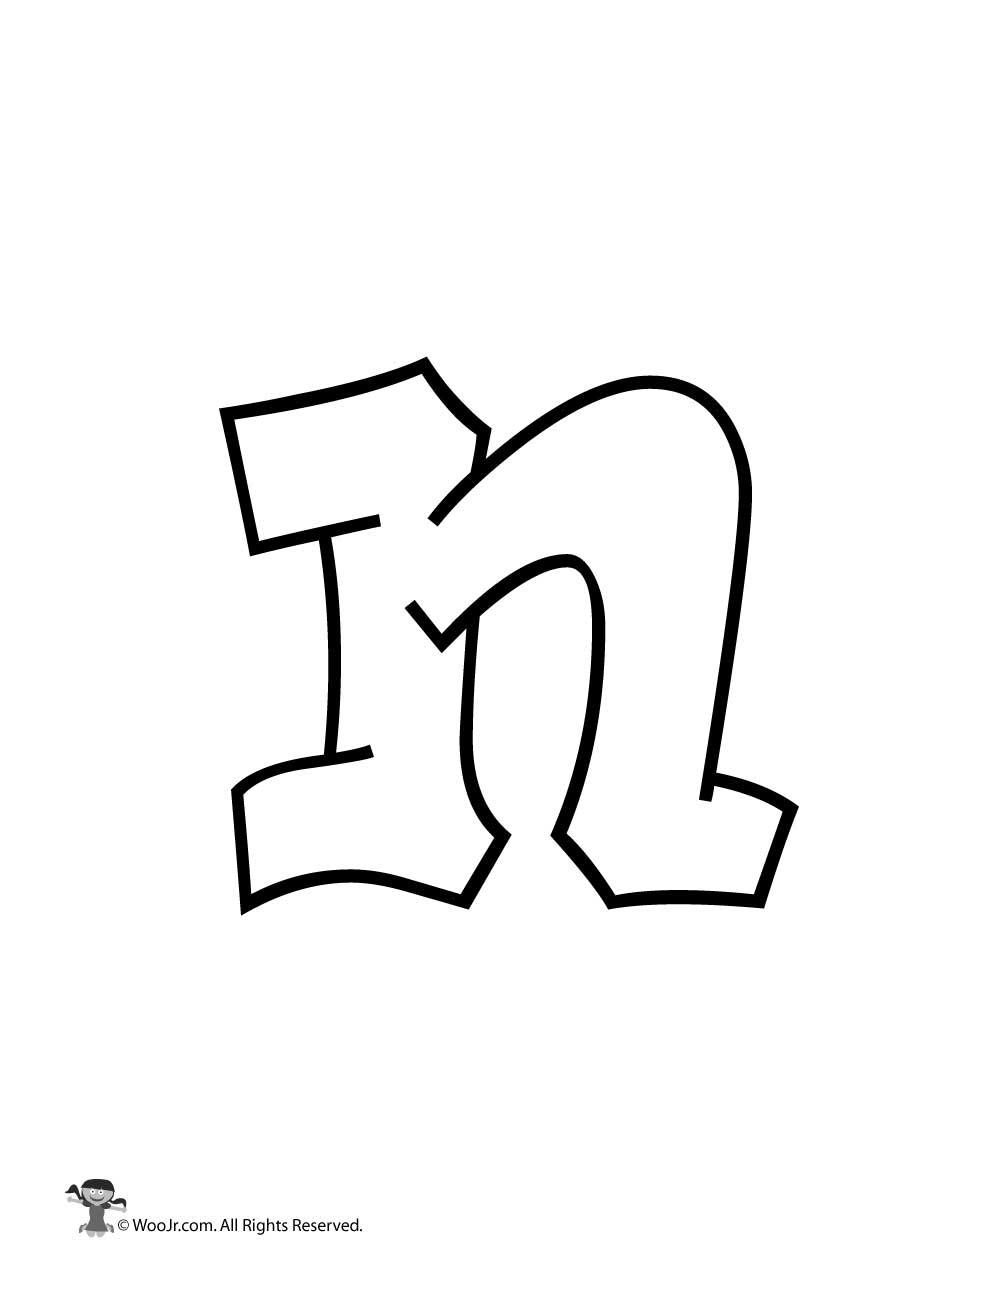 Graffiti Lowercase Letter N